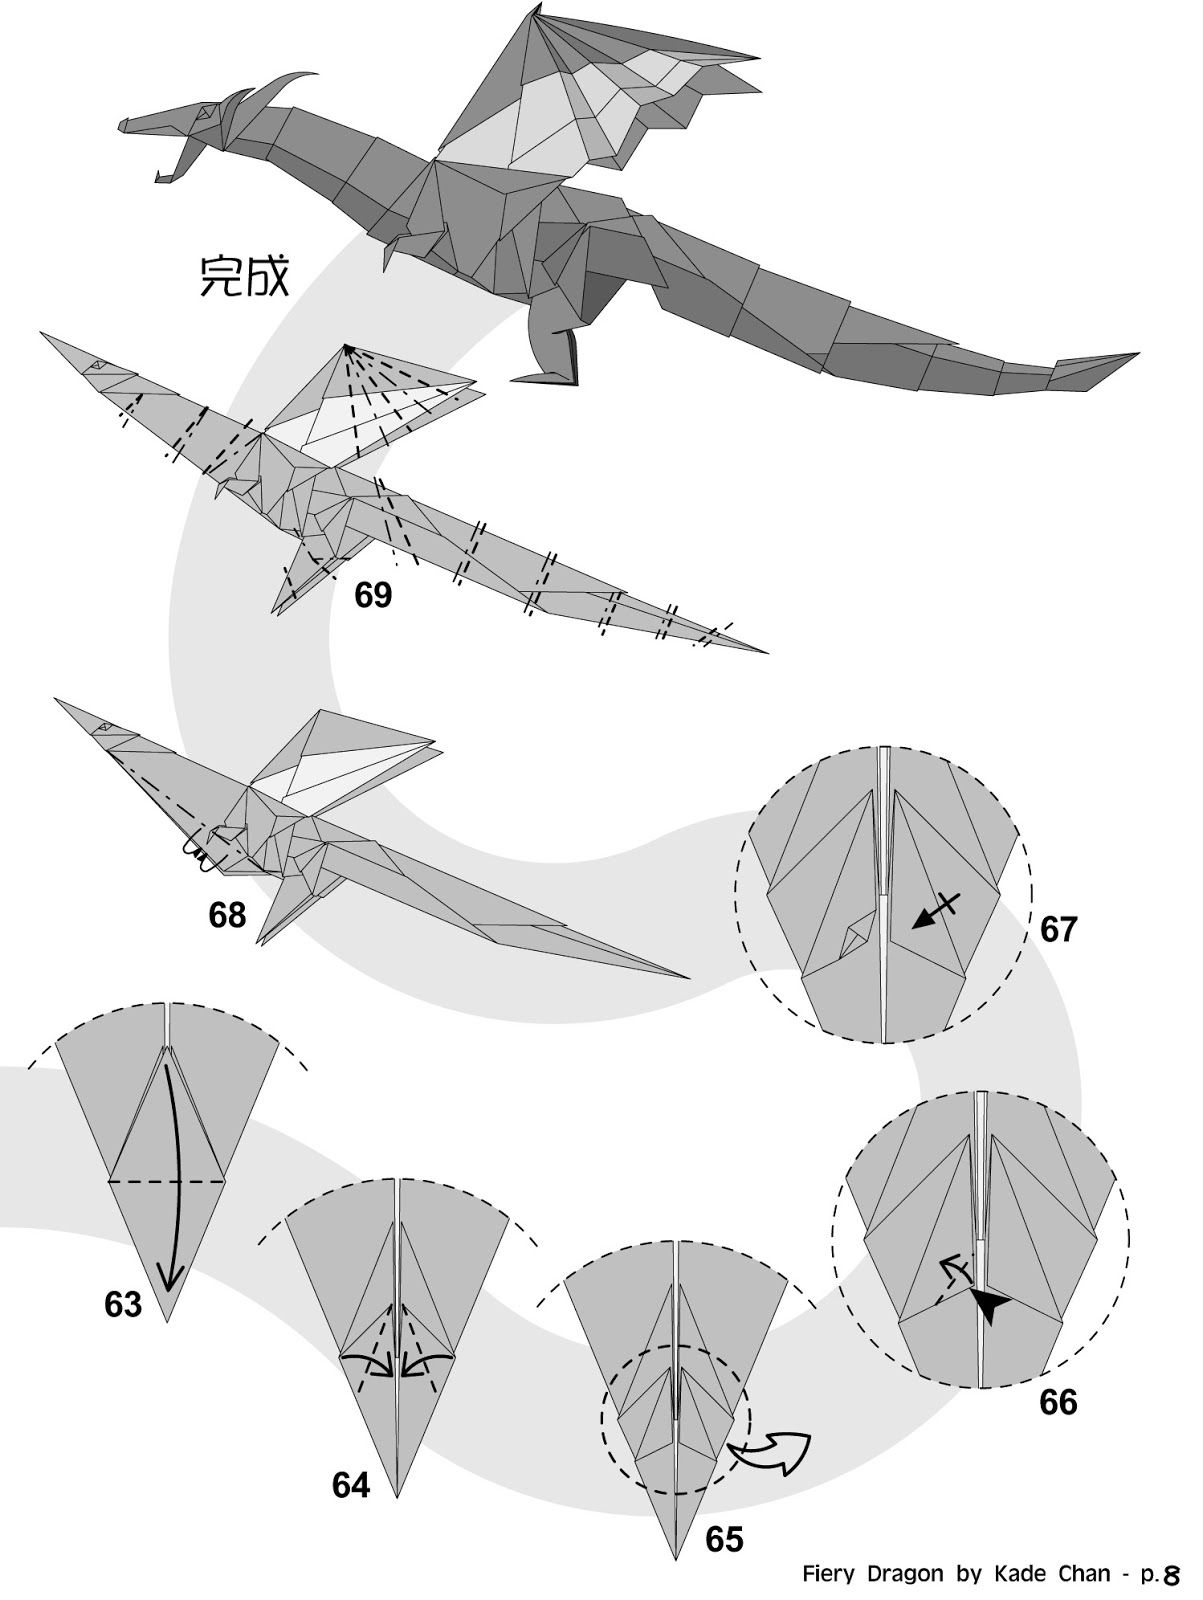 Kade Chan Origami Blog Fiery Dragon Diagrams O Xwing Fighter Diagram Easy Version Instructions Videos